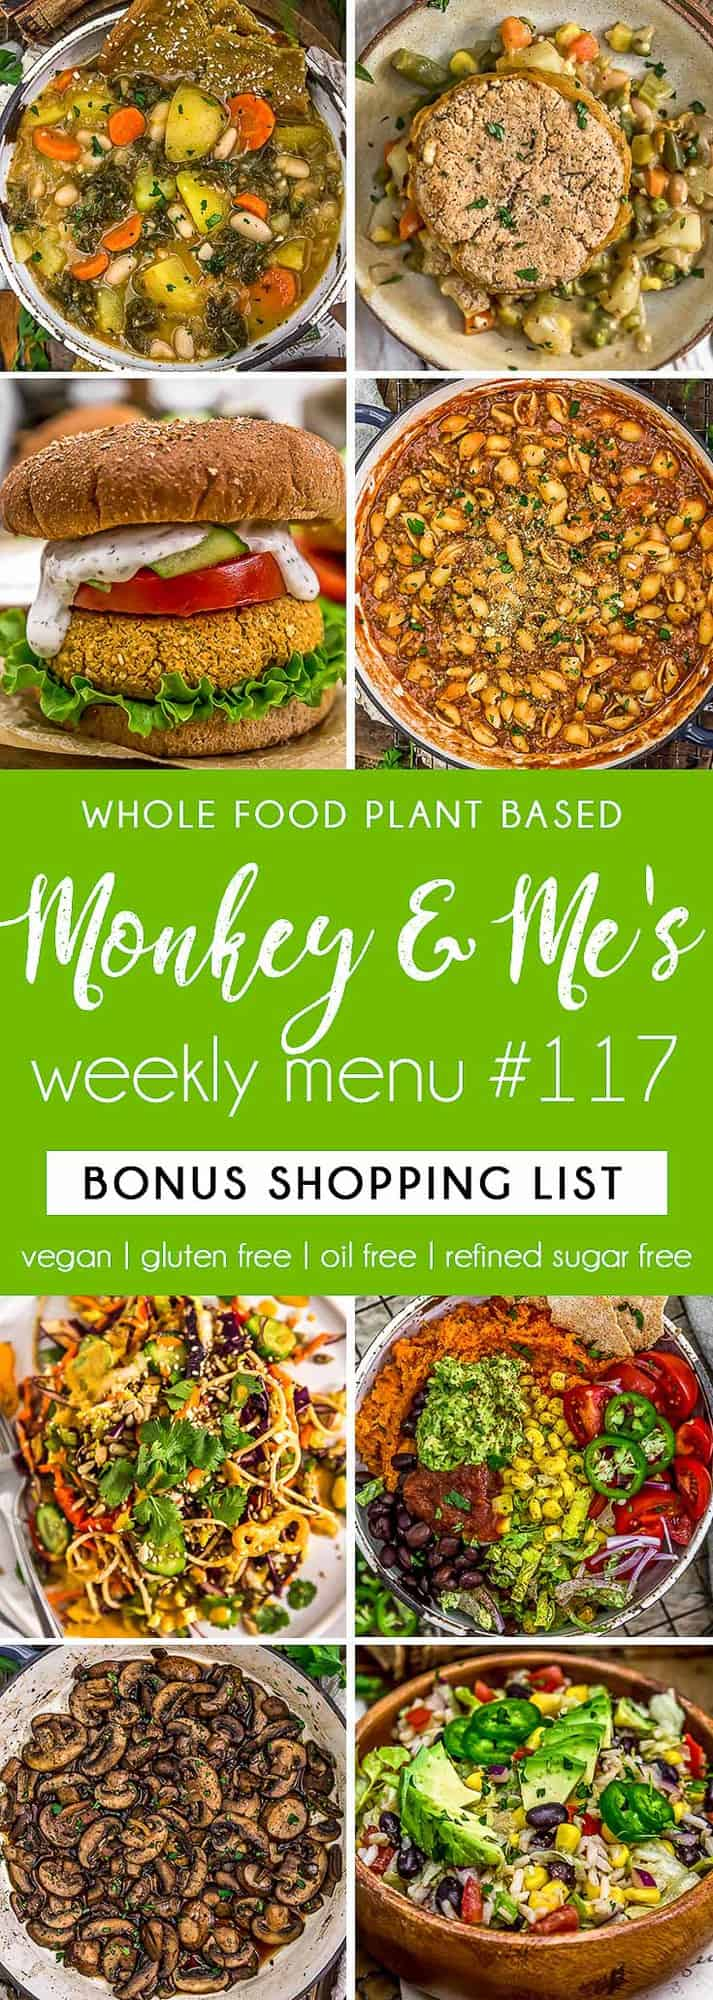 Monkey and Me's Menu 117 featuring 8 recipes